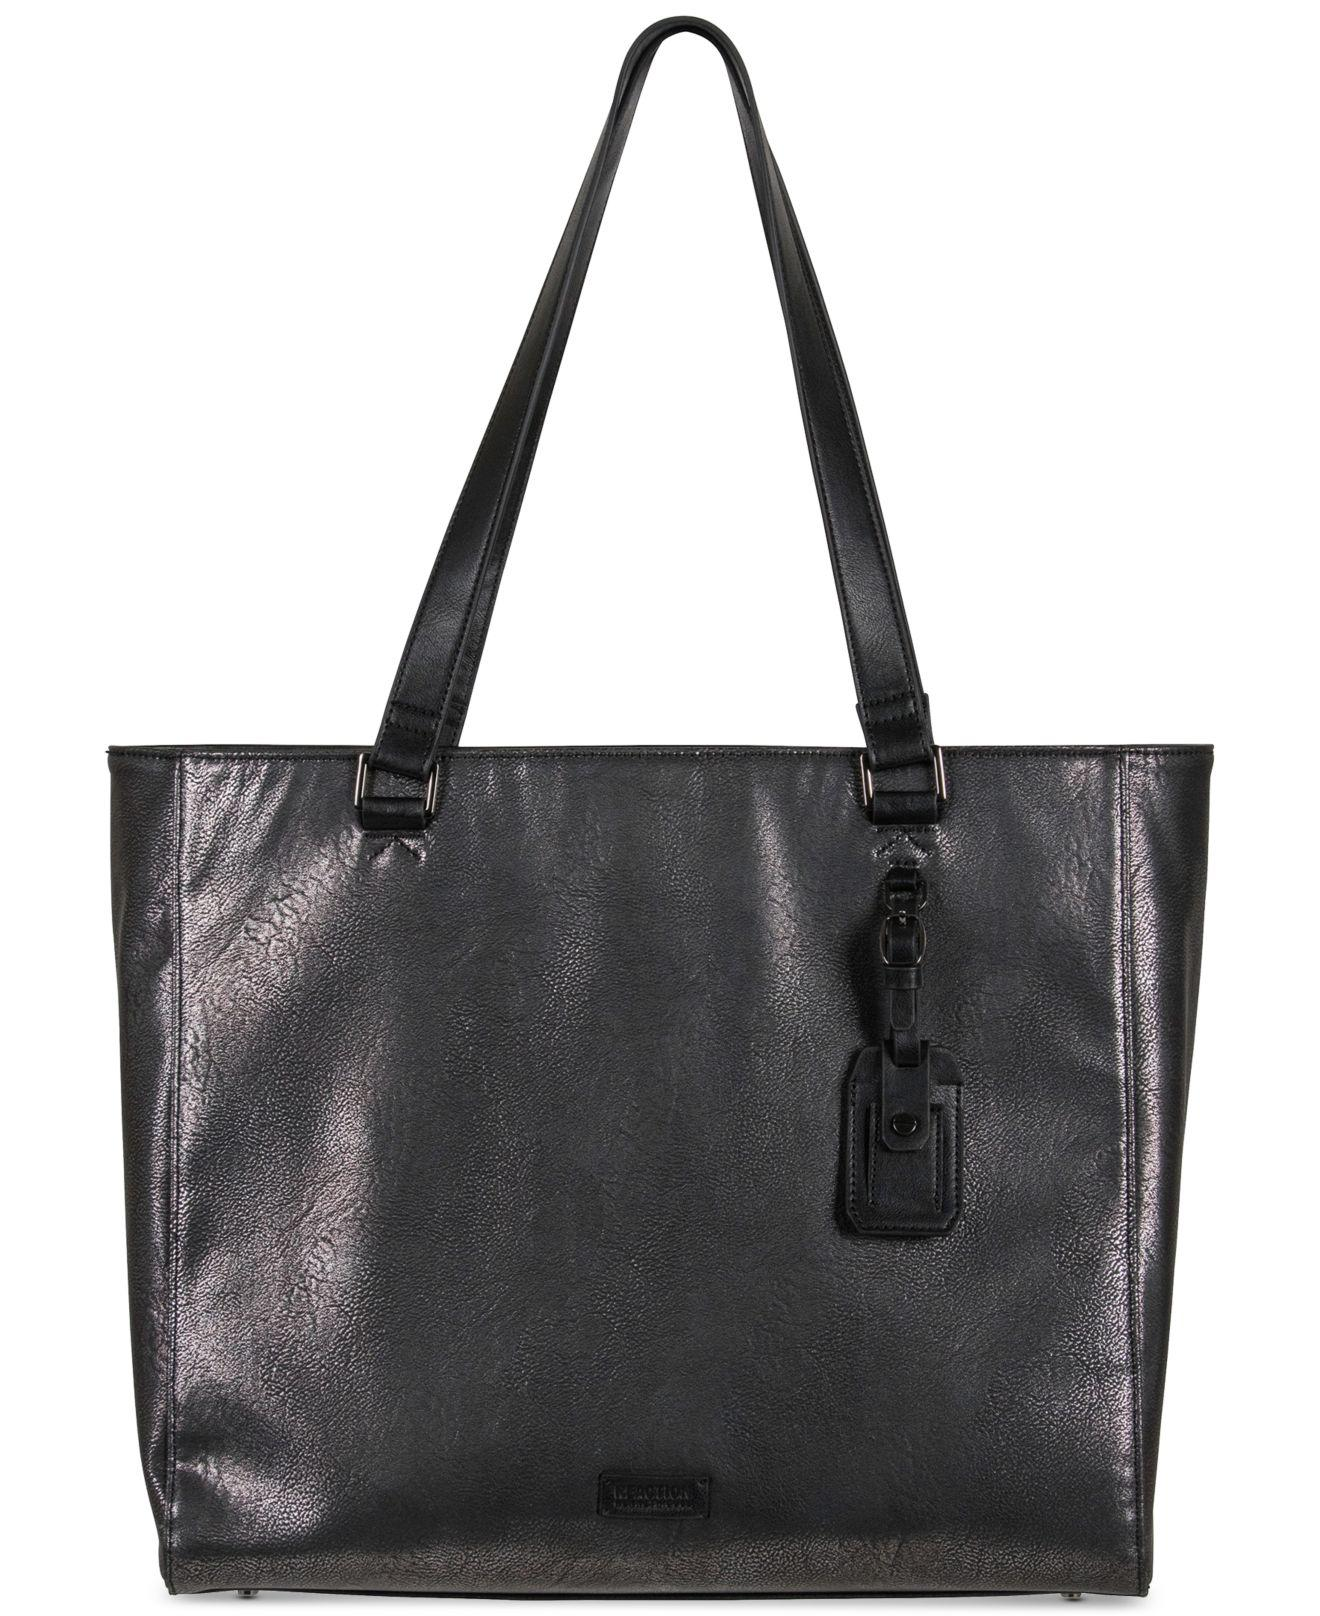 f3b039a5f0 Kenneth Cole Reaction Tote-ally Silver Faux-leather Tote in Black - Lyst